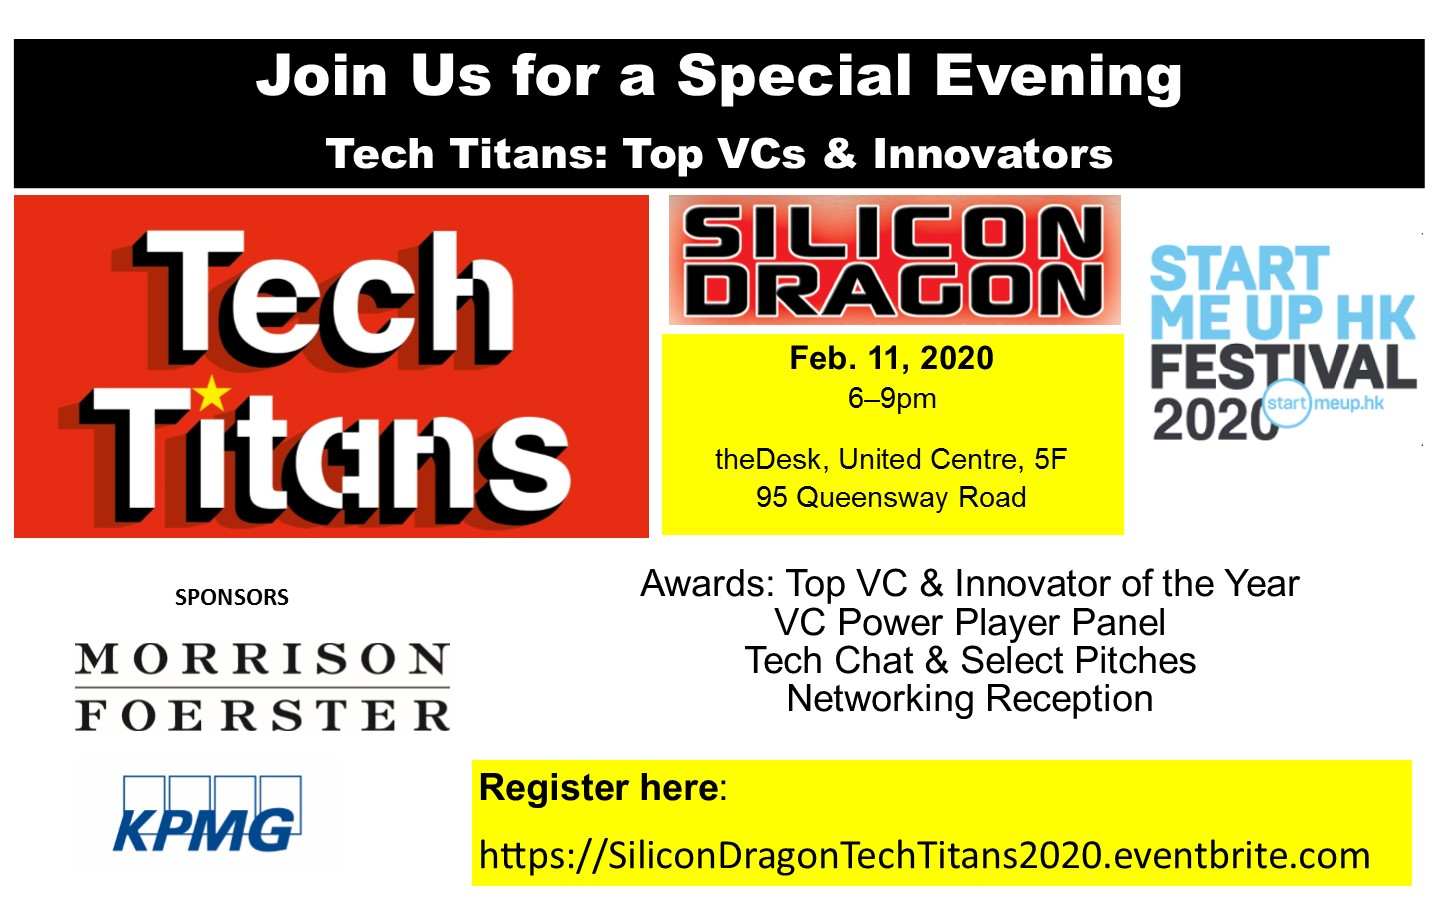 Silicon Dragon Tech Titans 2020